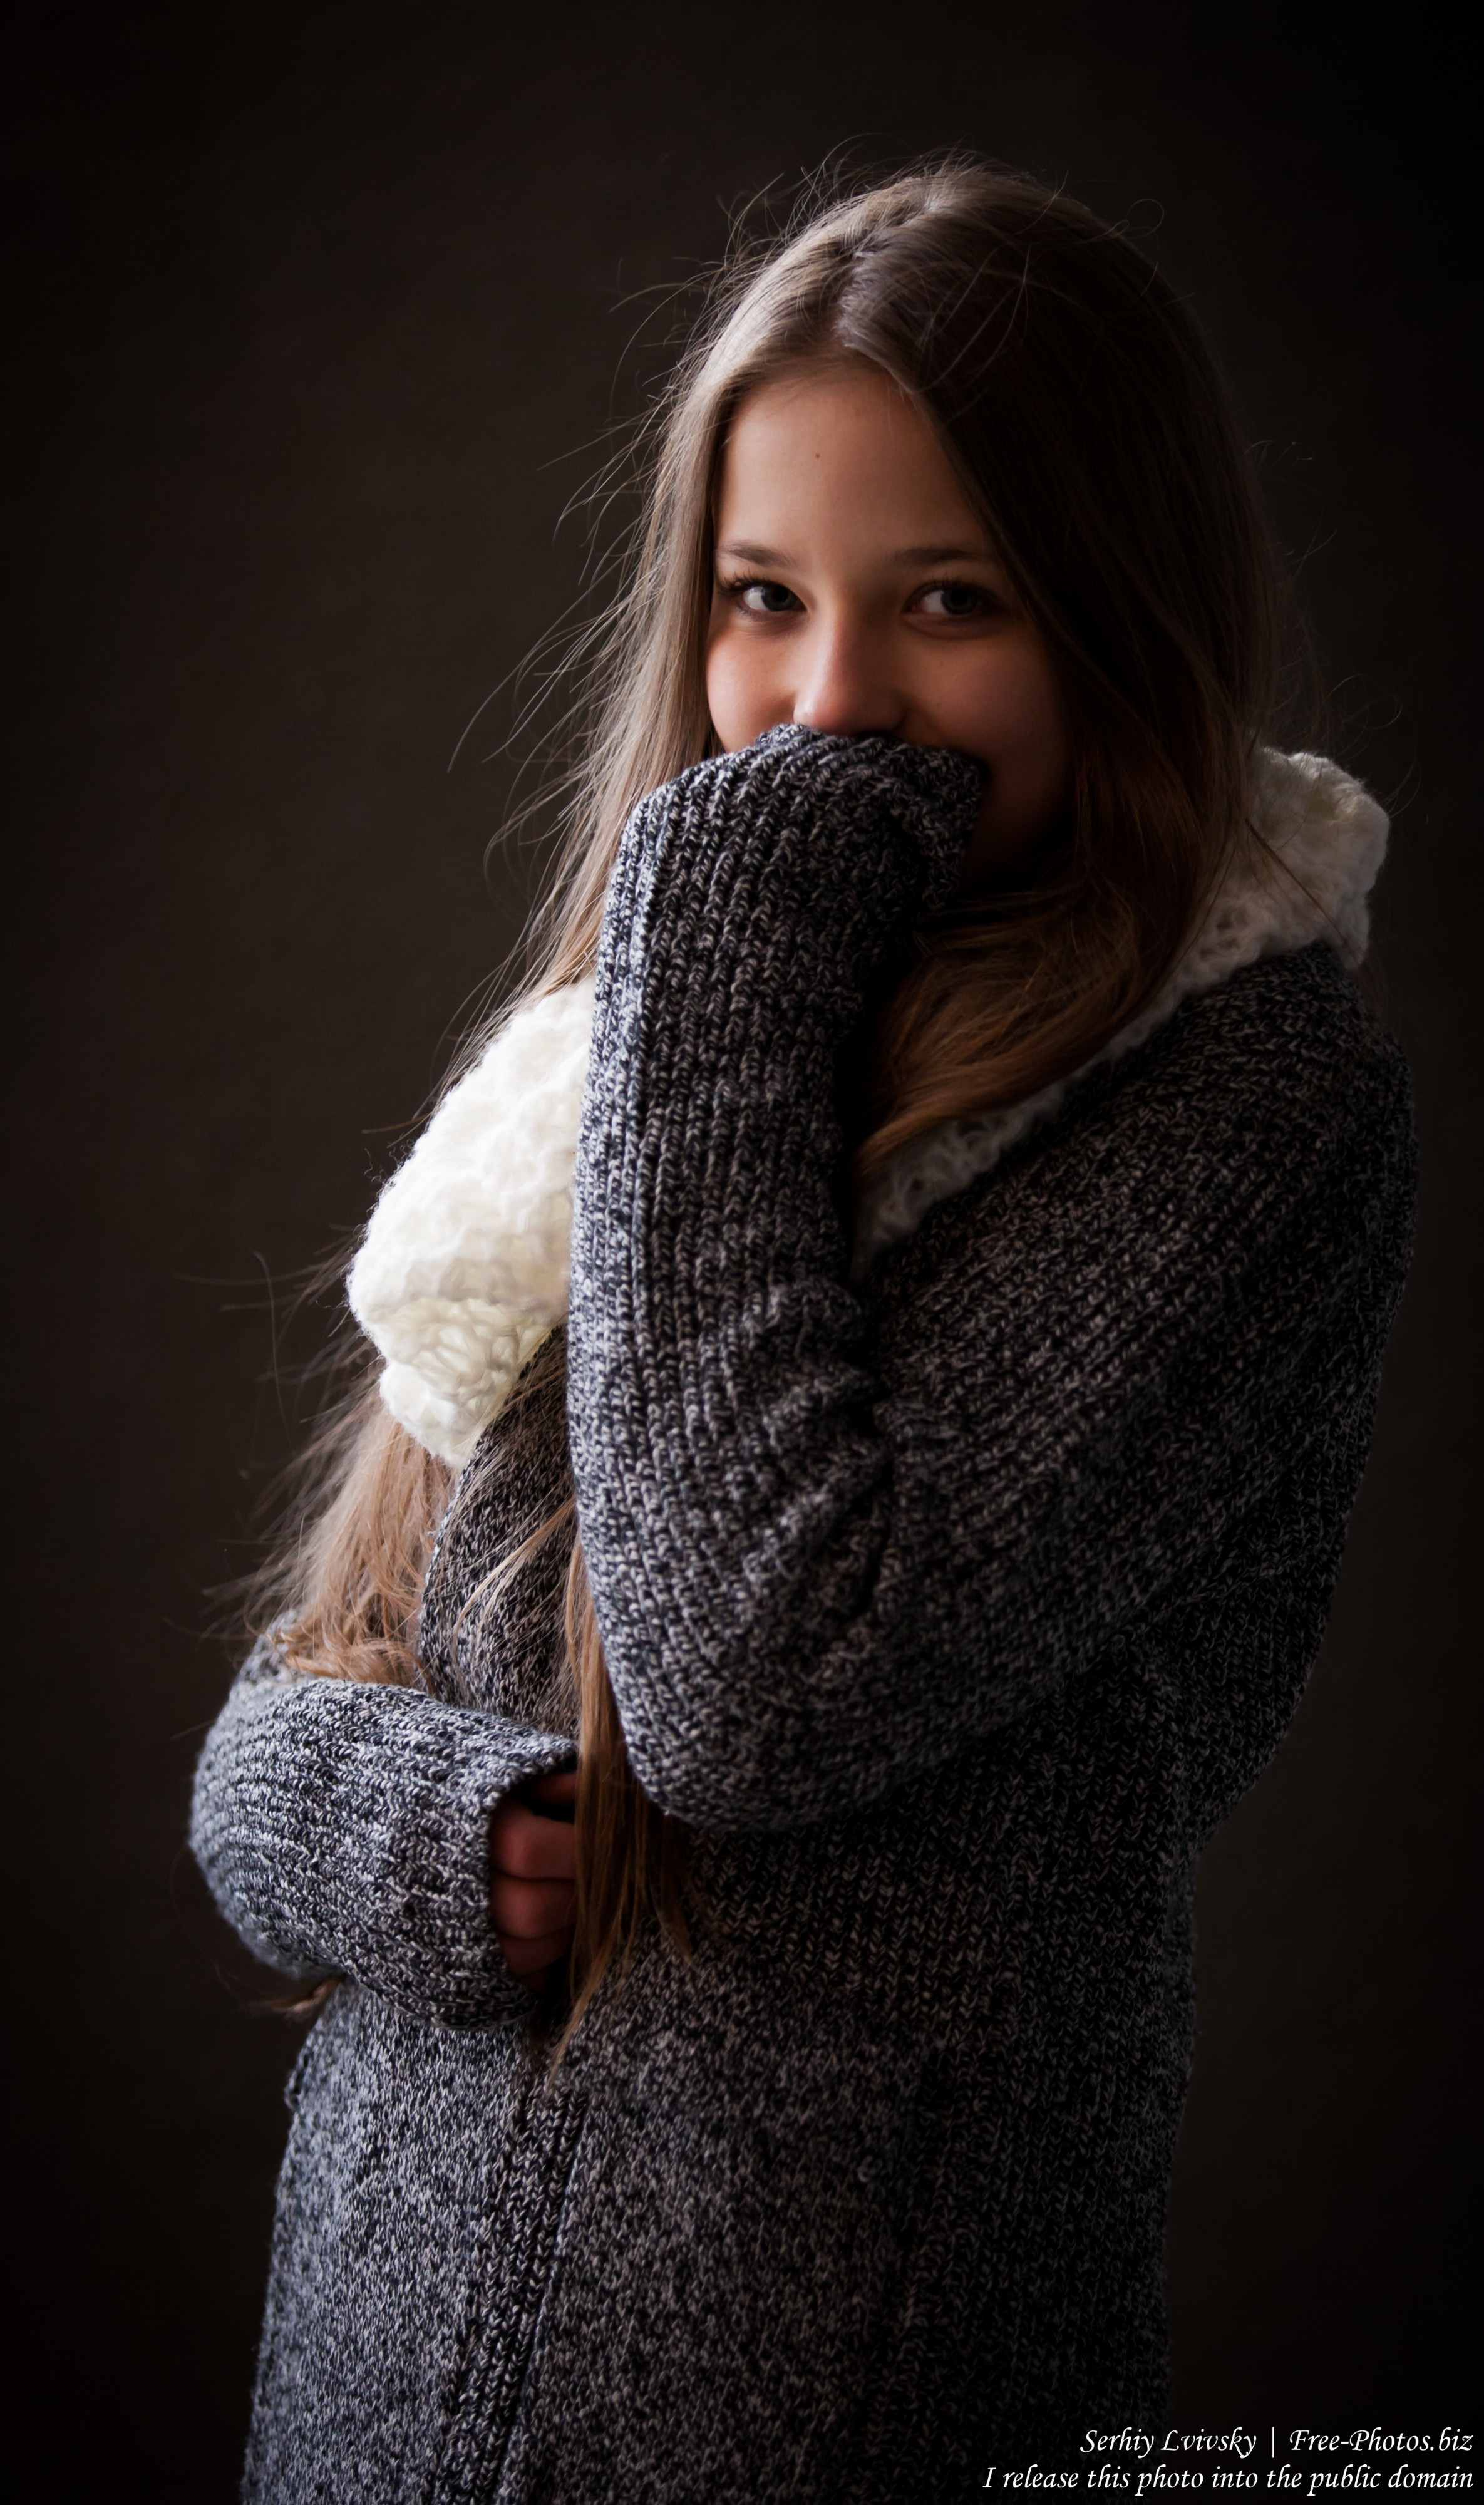 a 13-year-old girl photographed in January 2016 by Serhiy Lvivsky, picture 3